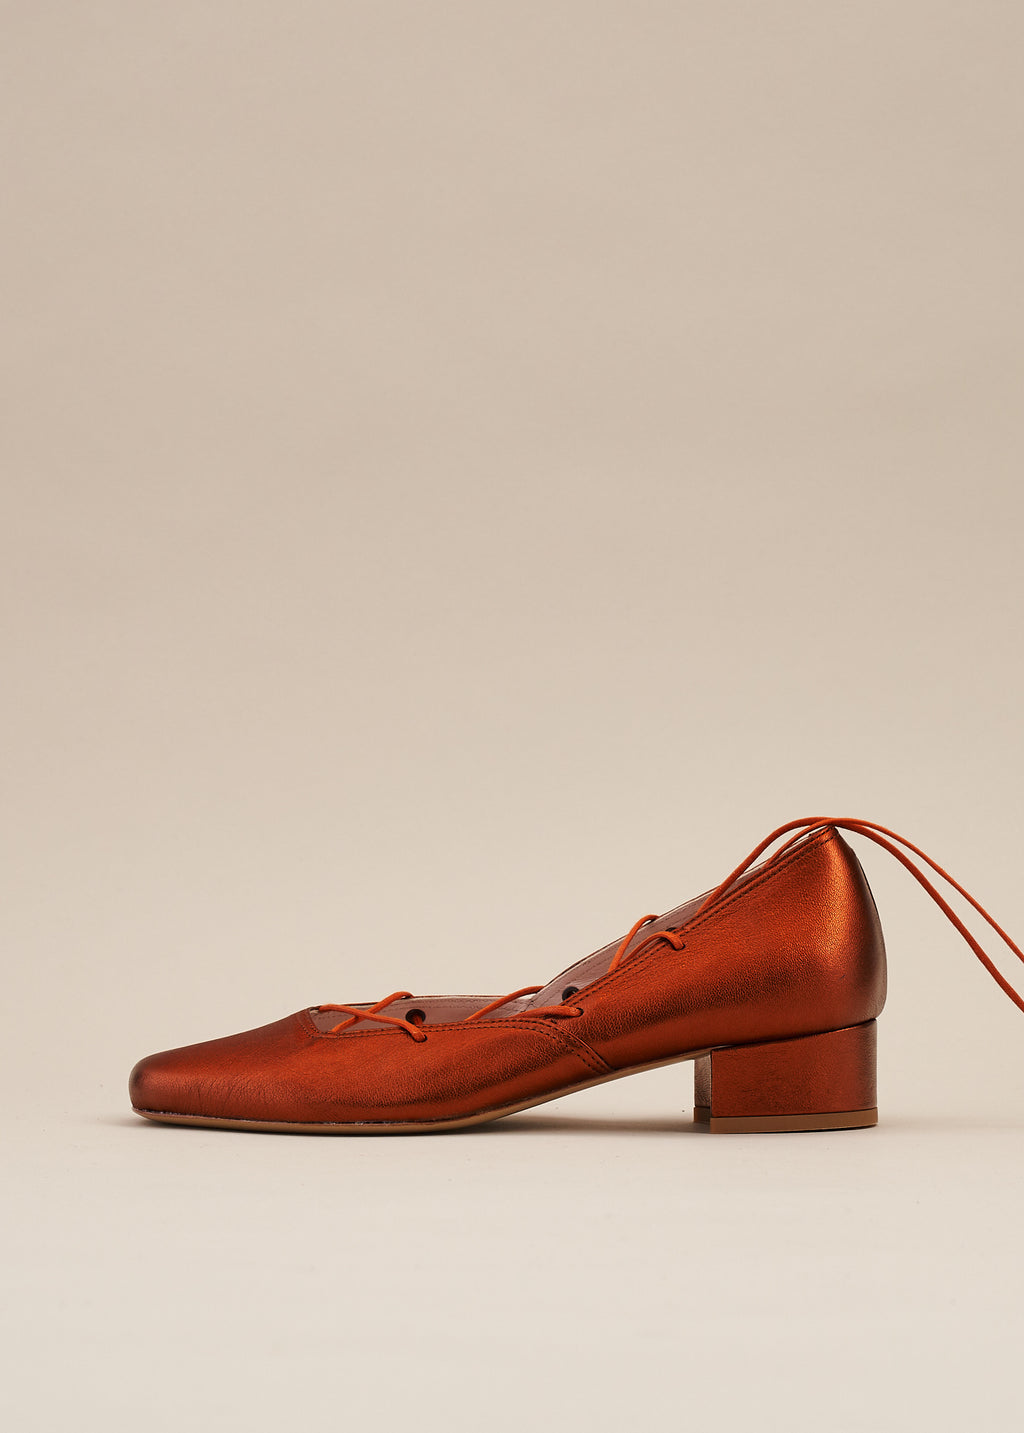 Elinor Rust Metallic Leather Lace-up Ballerina Pump- LAST PAIRS SIZES 40 & 41!